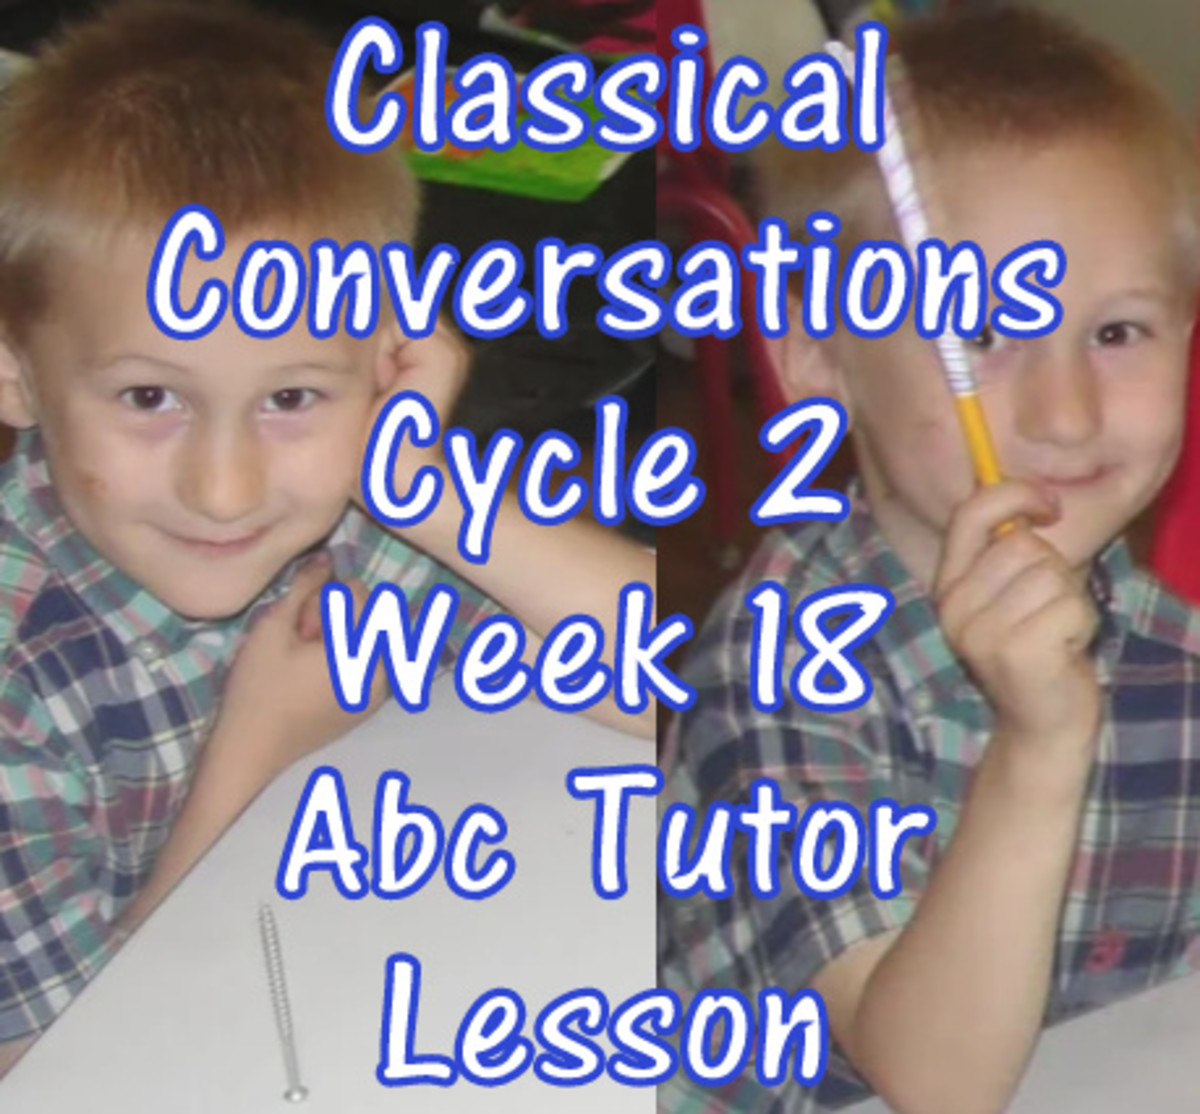 CC Classical Conversations Cycle 2 Week 18 Abc Tutor Lesson Plan